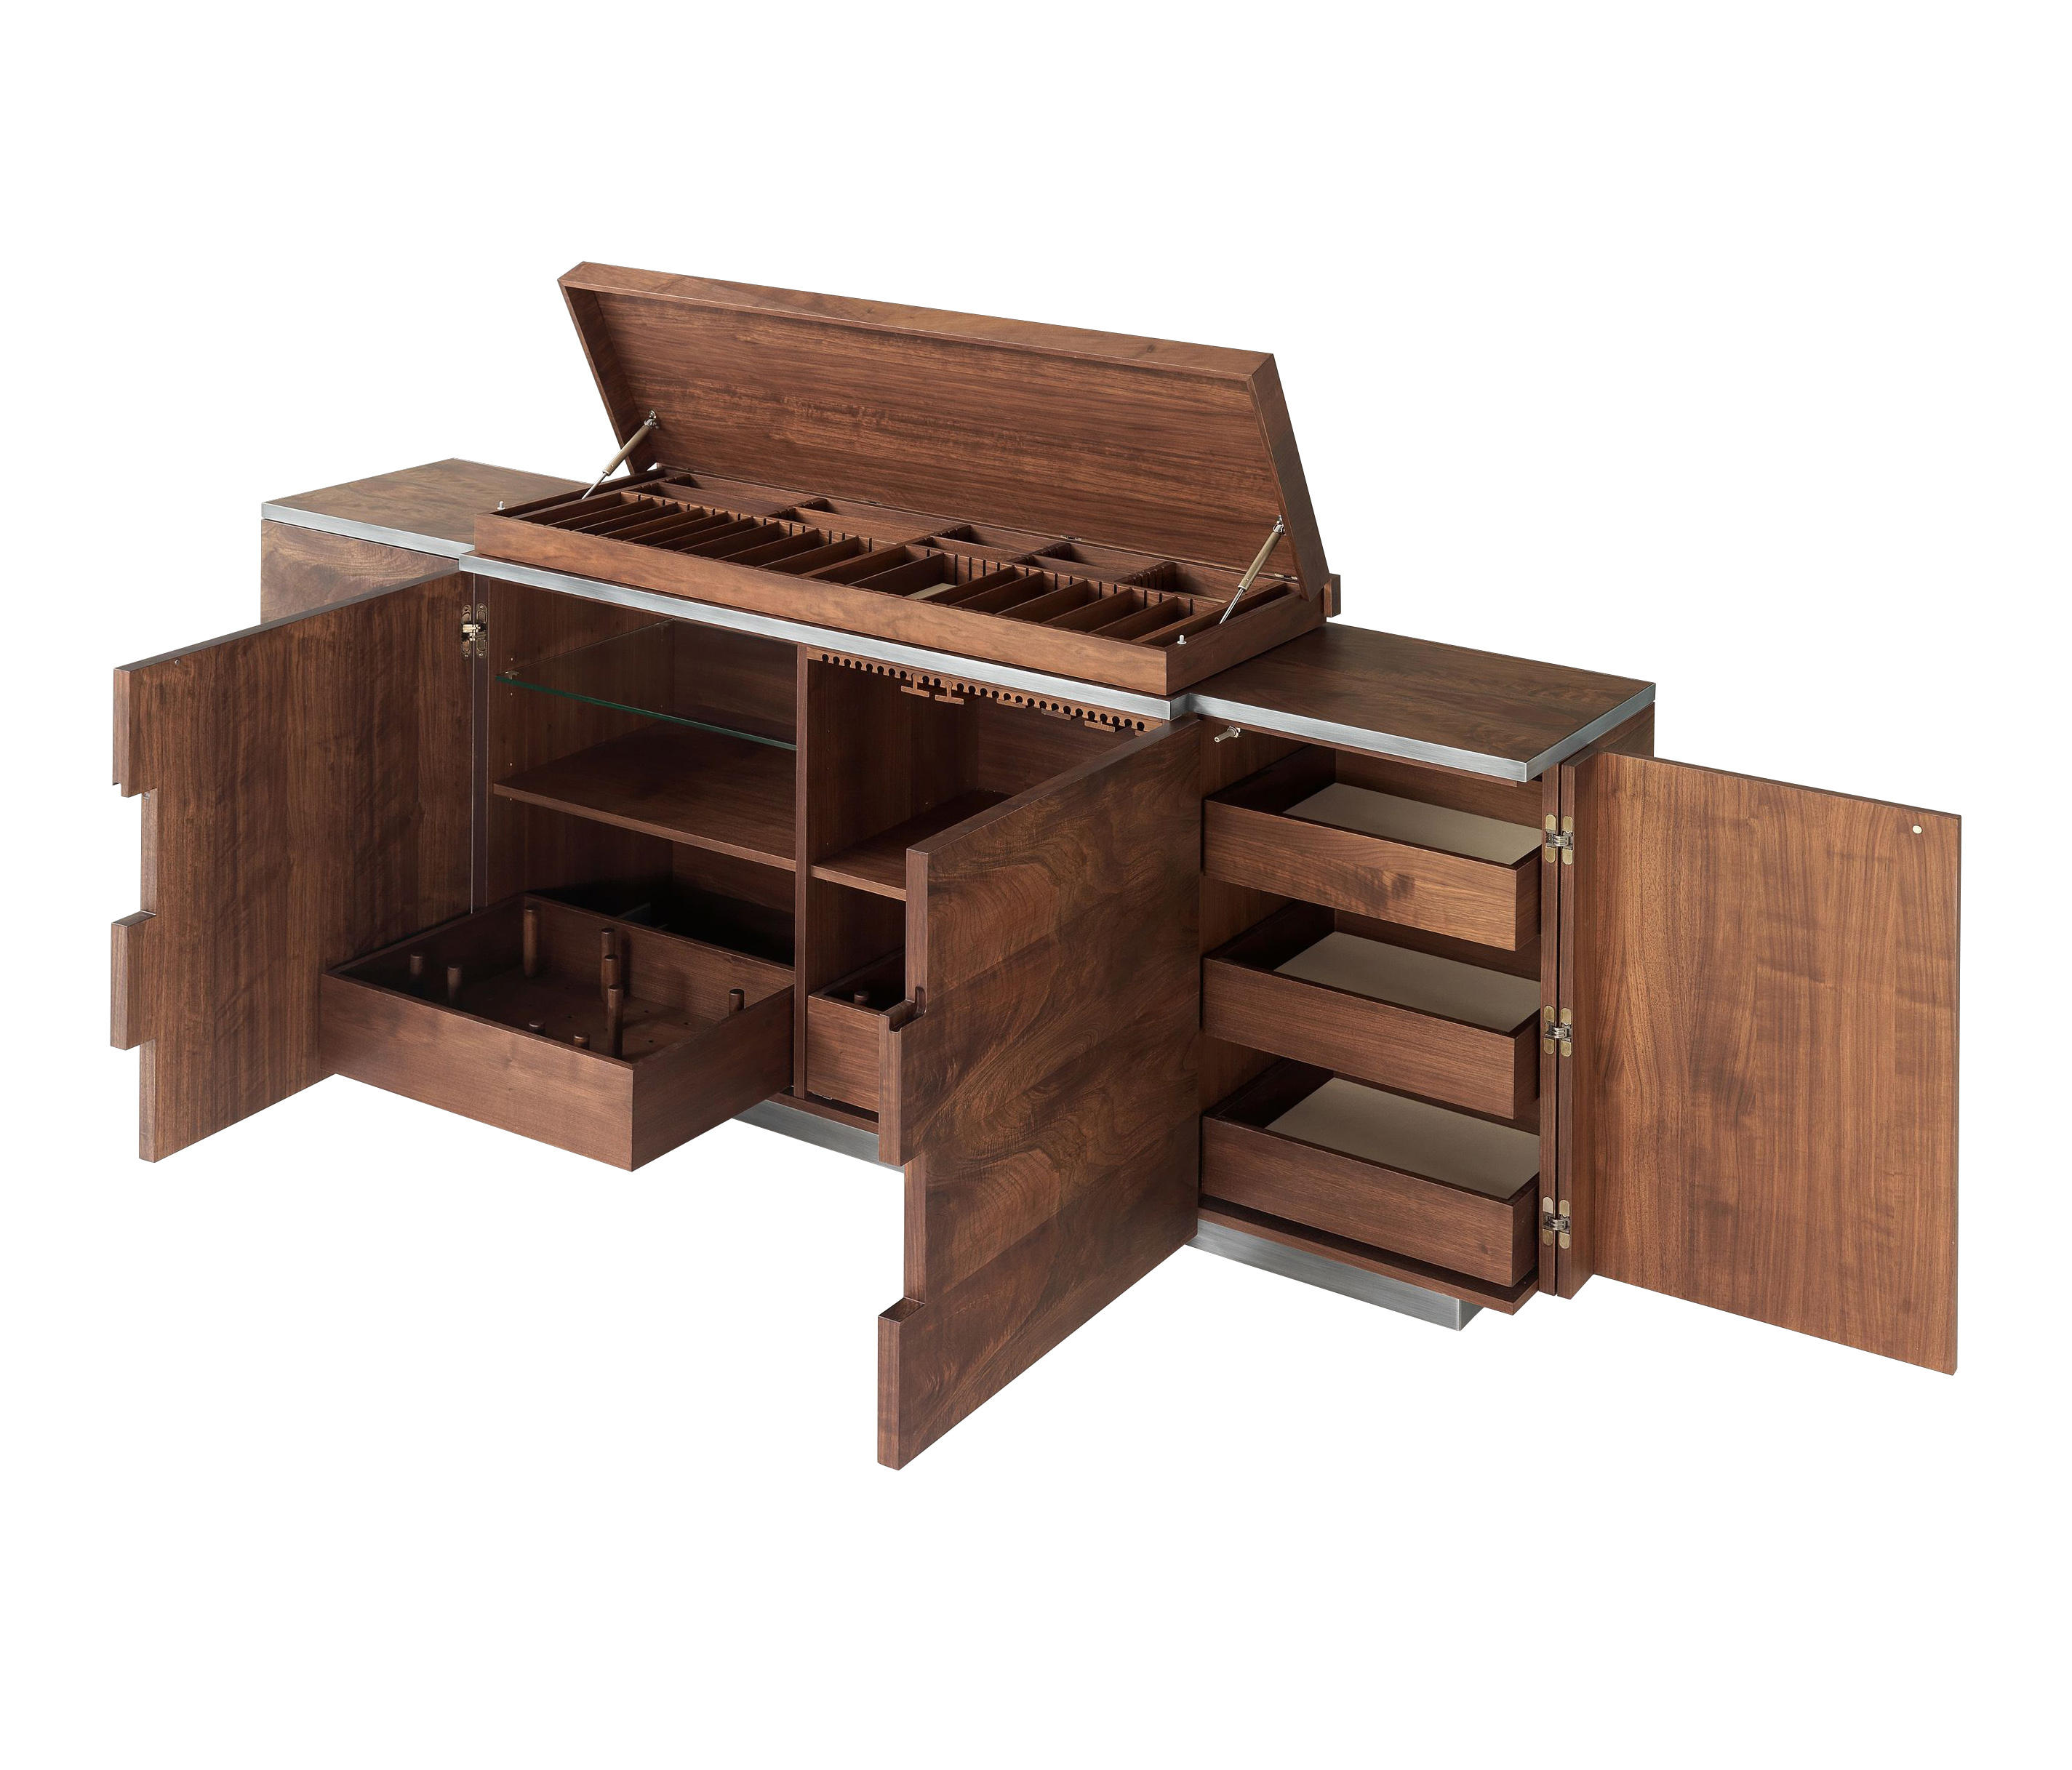 ... Unico Sideboard With Cutlery Drawer By MOBILFRESNO ALTERNATIVE |  Sideboards ...